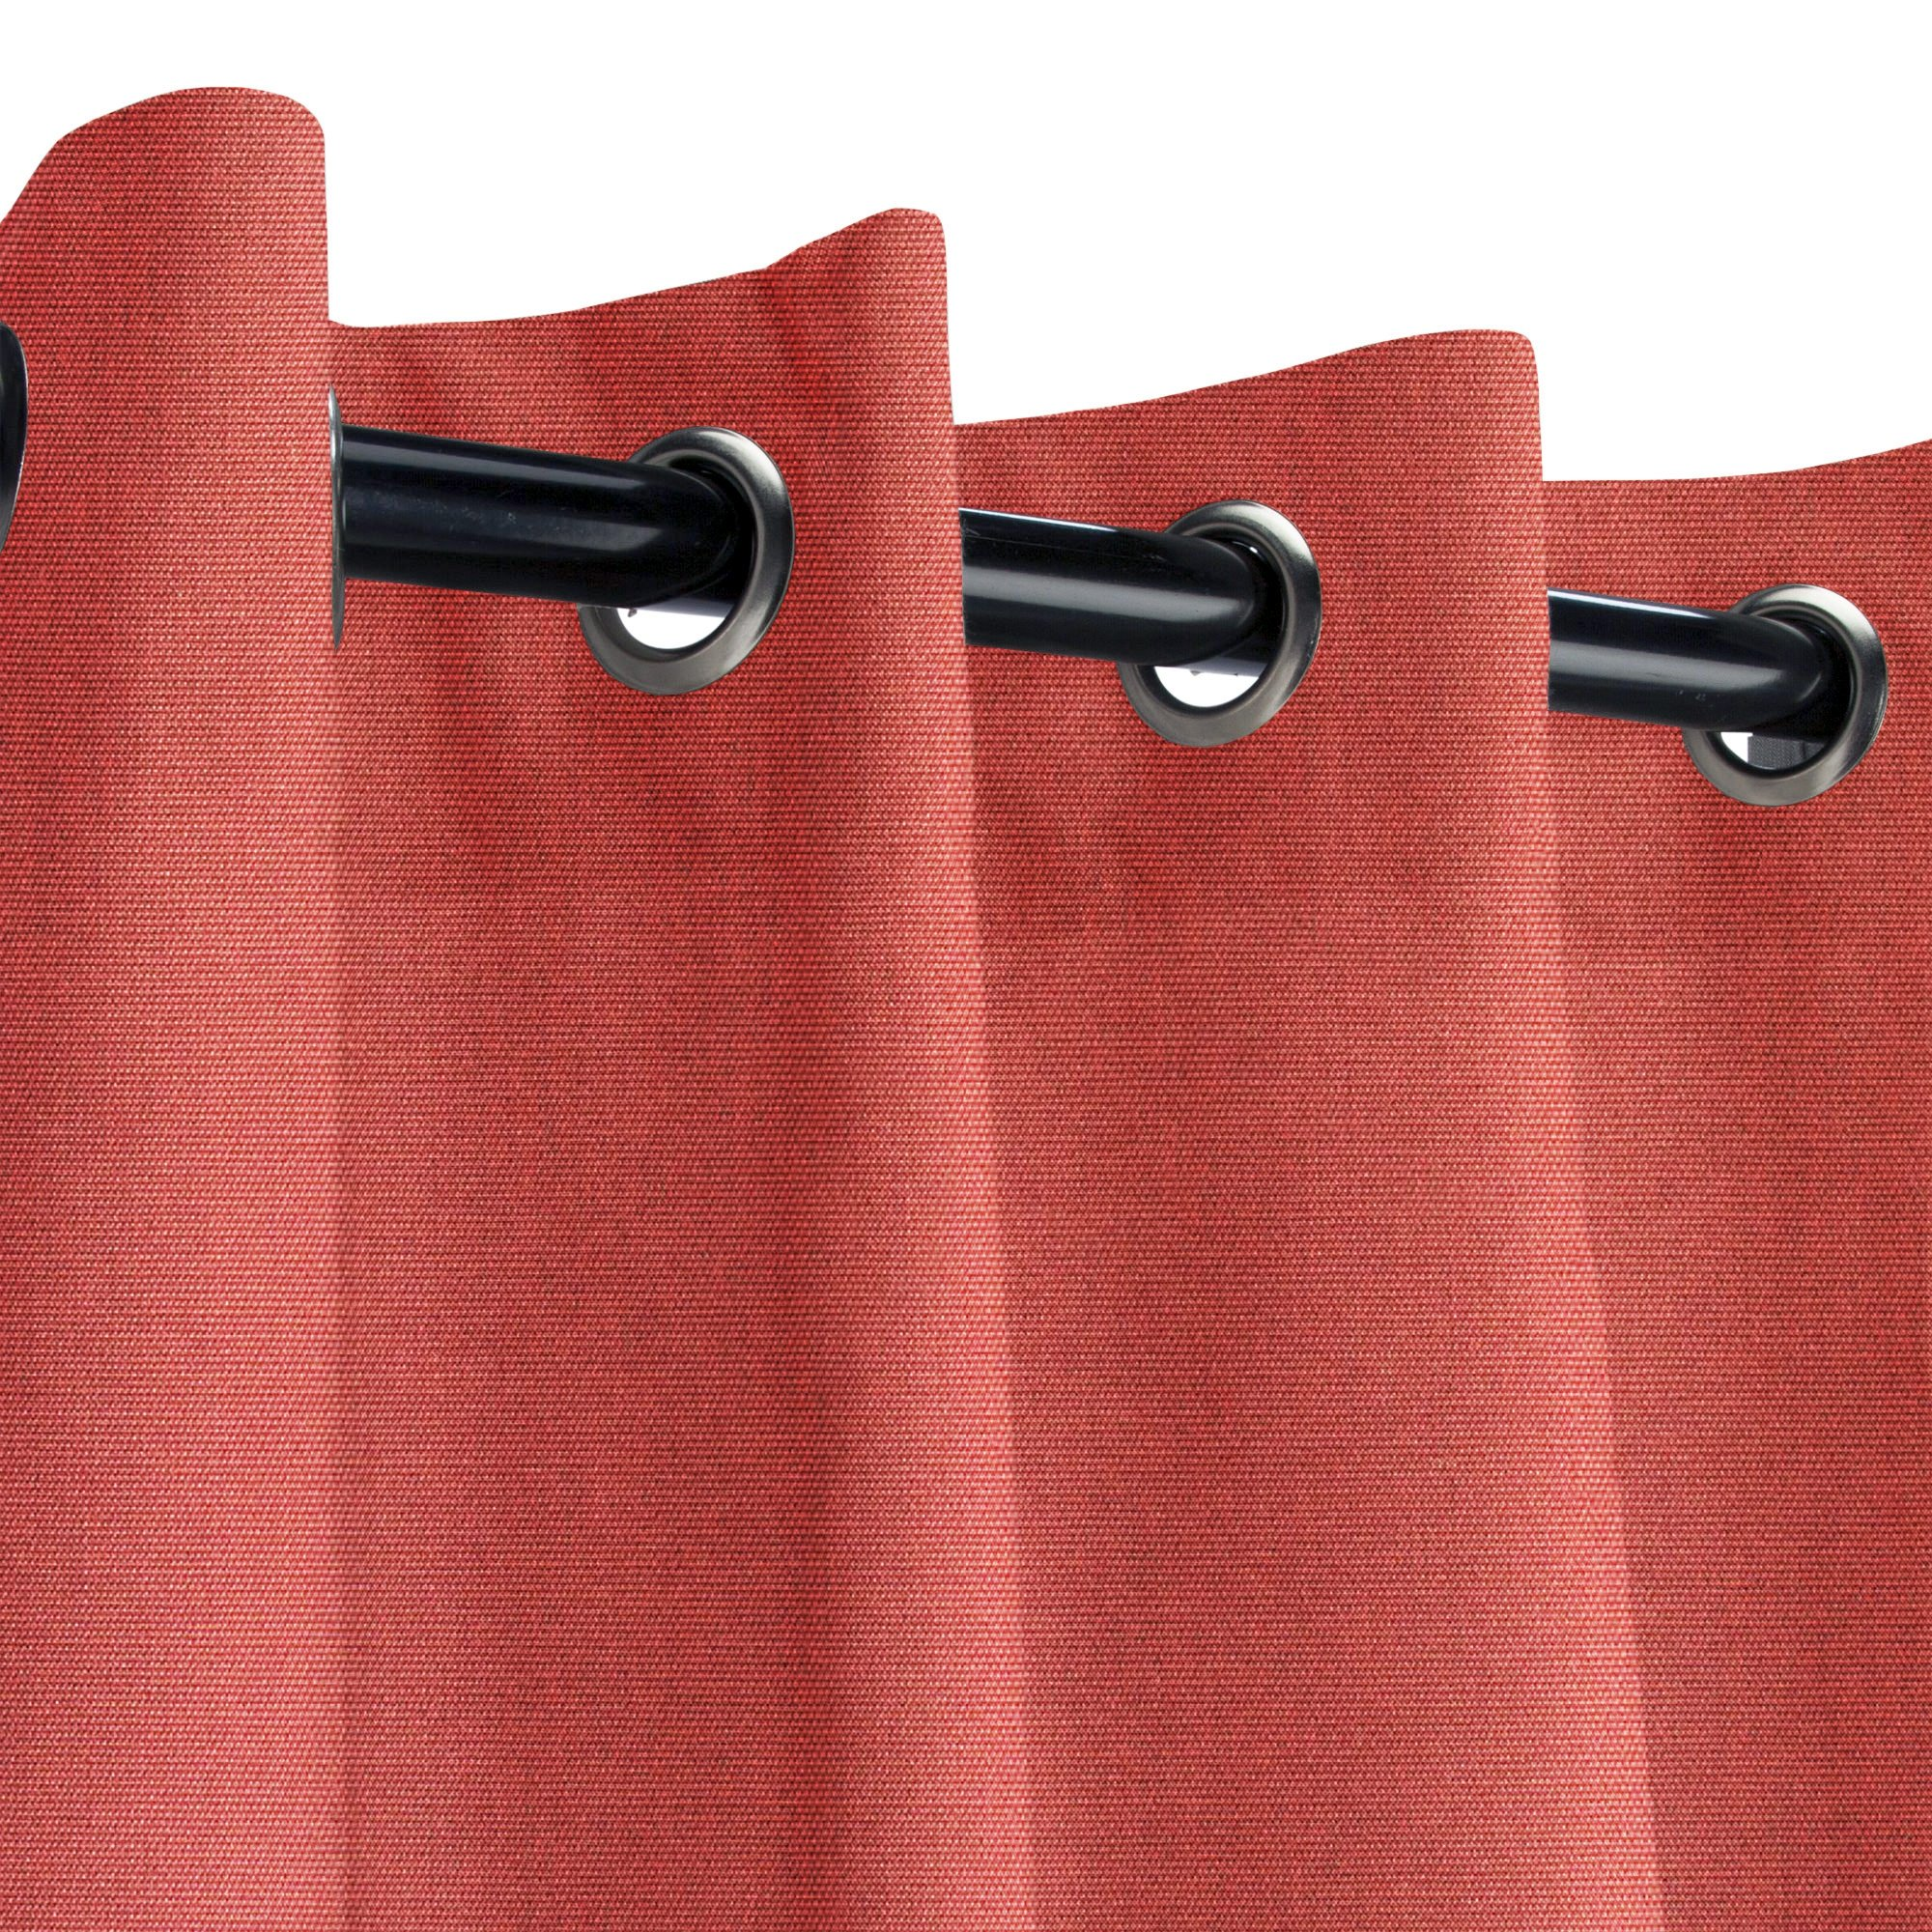 Sunbrella Canvas Henna Outdoor Curtain with Nickel Grommets 50 in. Wide x 84 in. Long